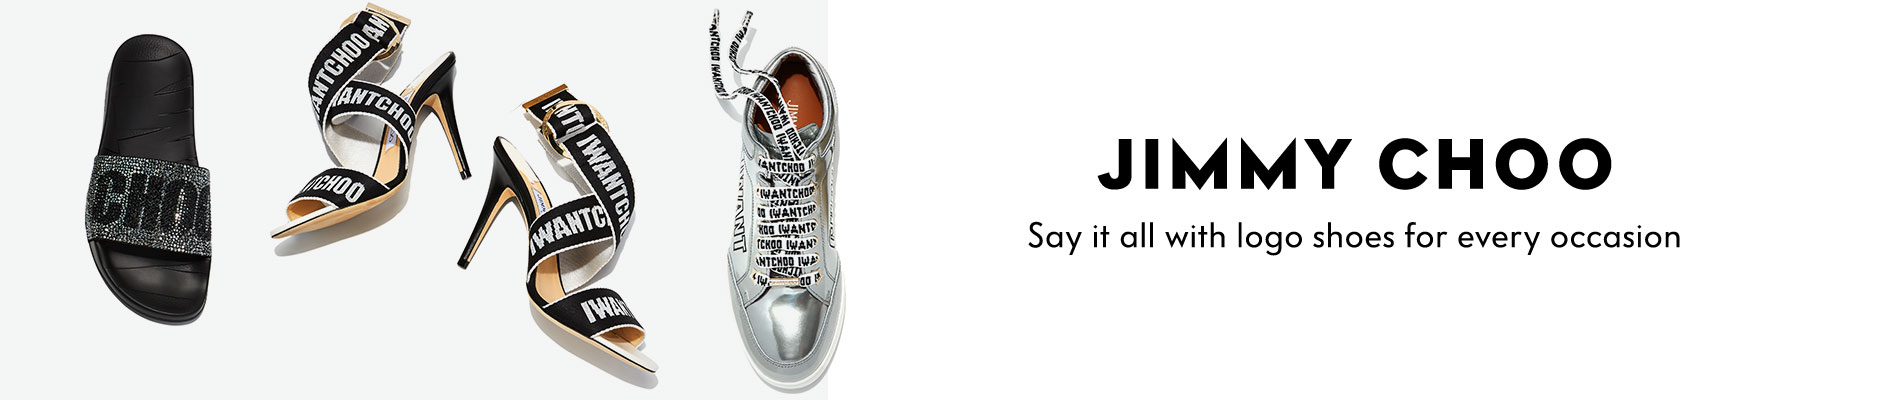 Jimmy Choo - Say it all with logo shoes for every occasion